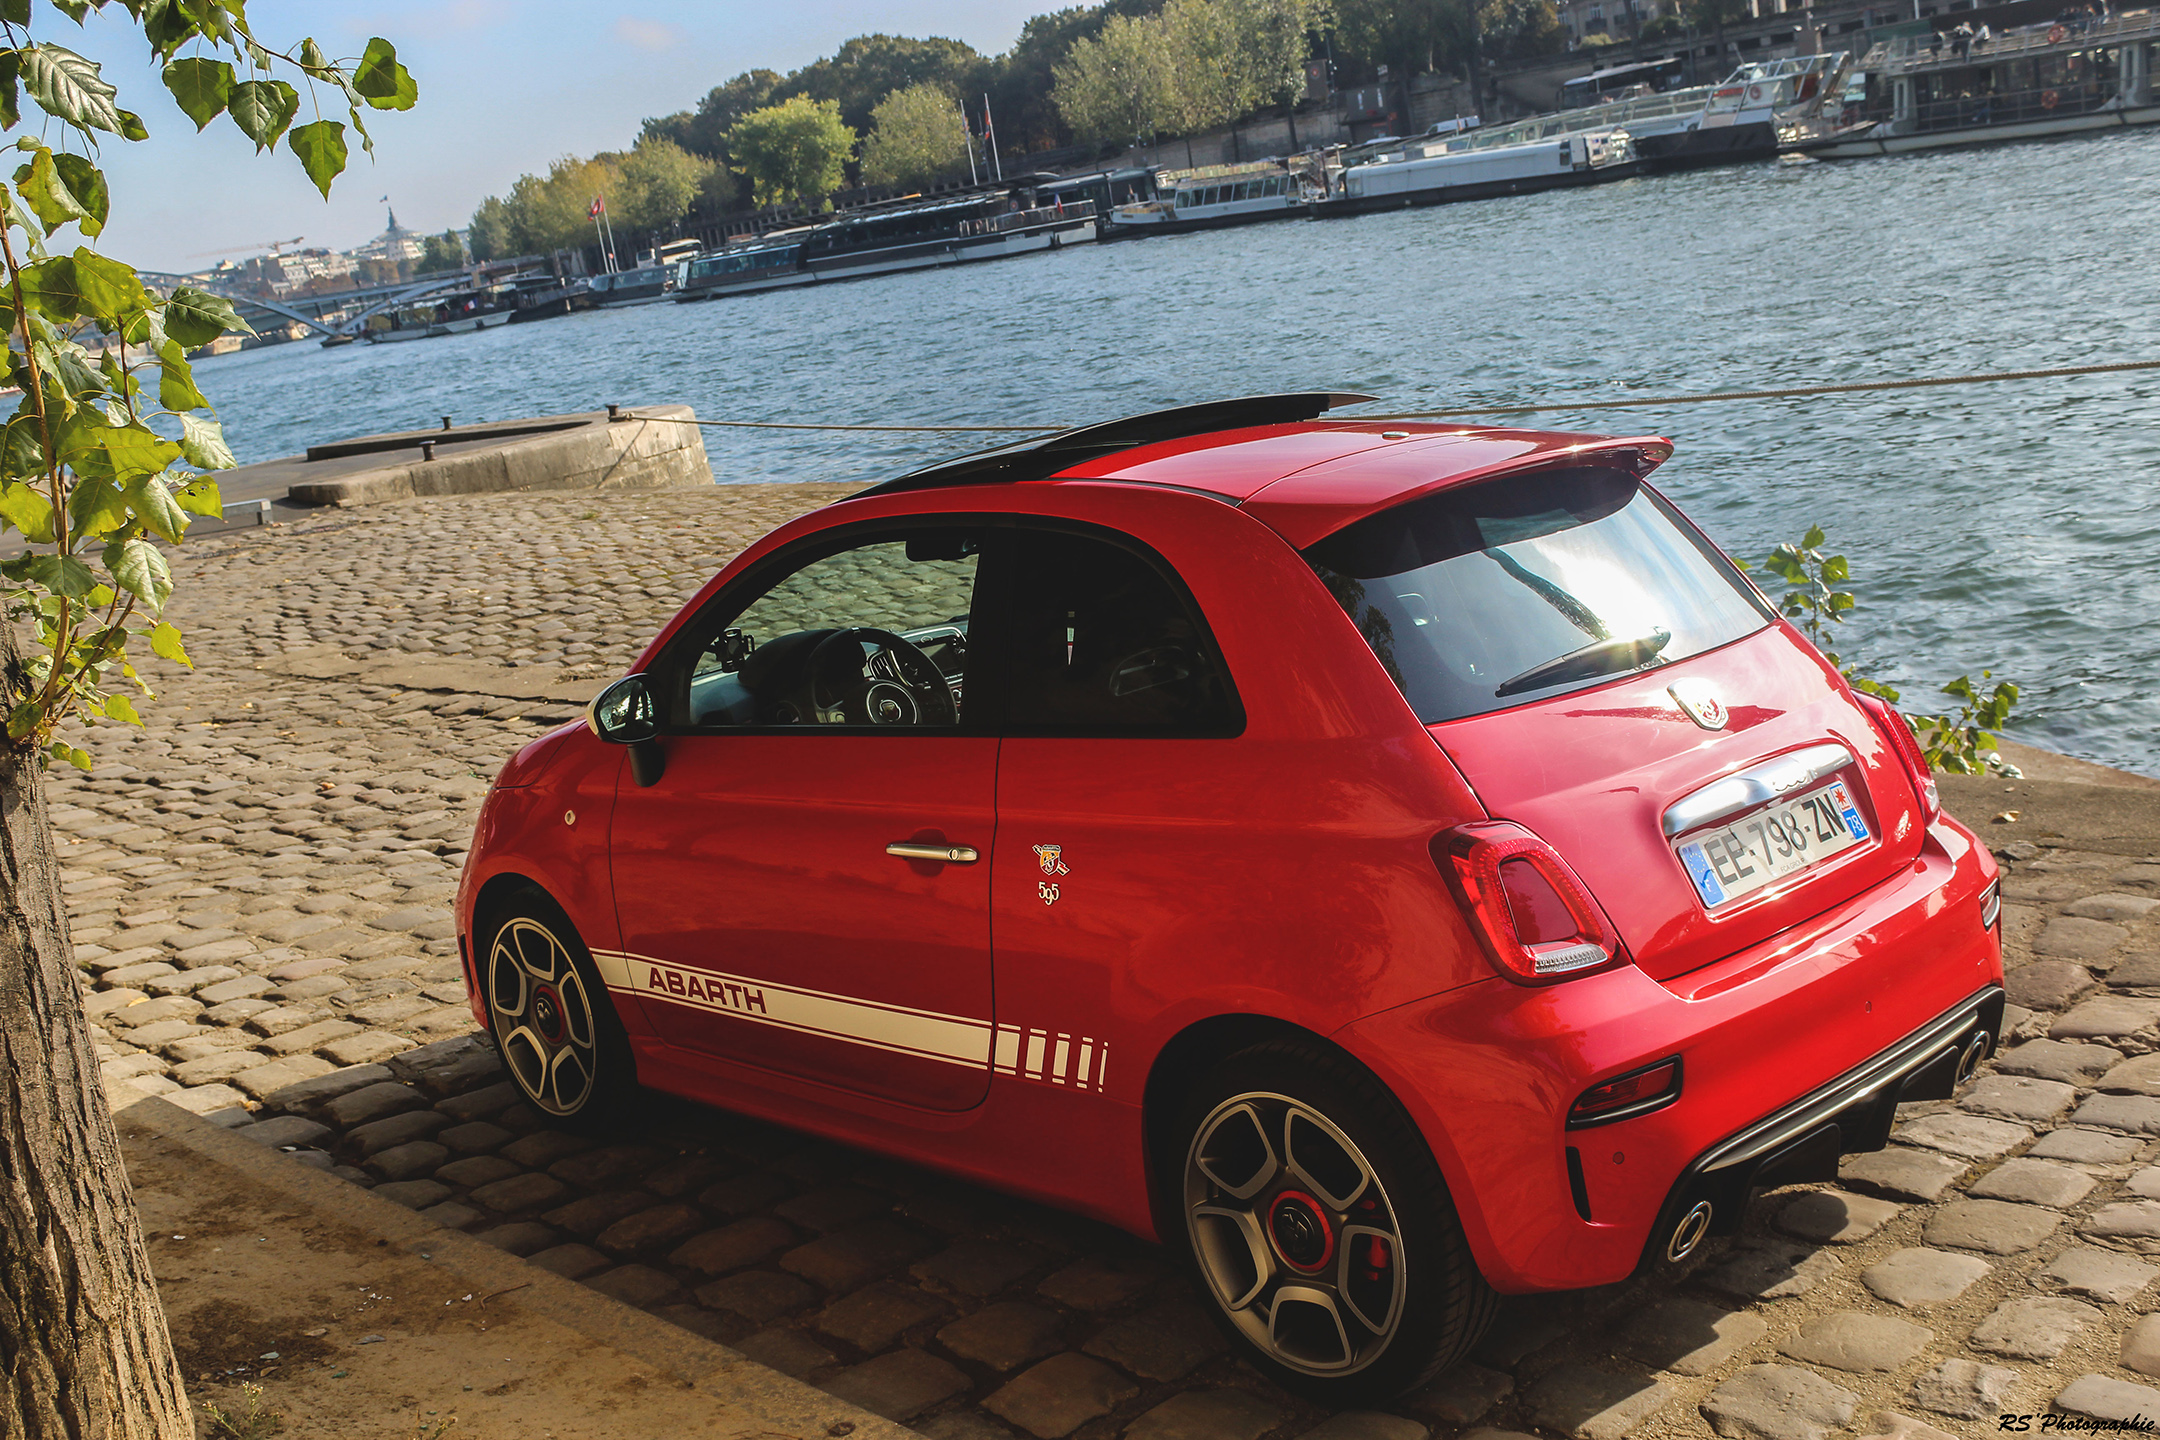 Abarth-595-arriere-rear-arnaud-demasier-rsphotographie